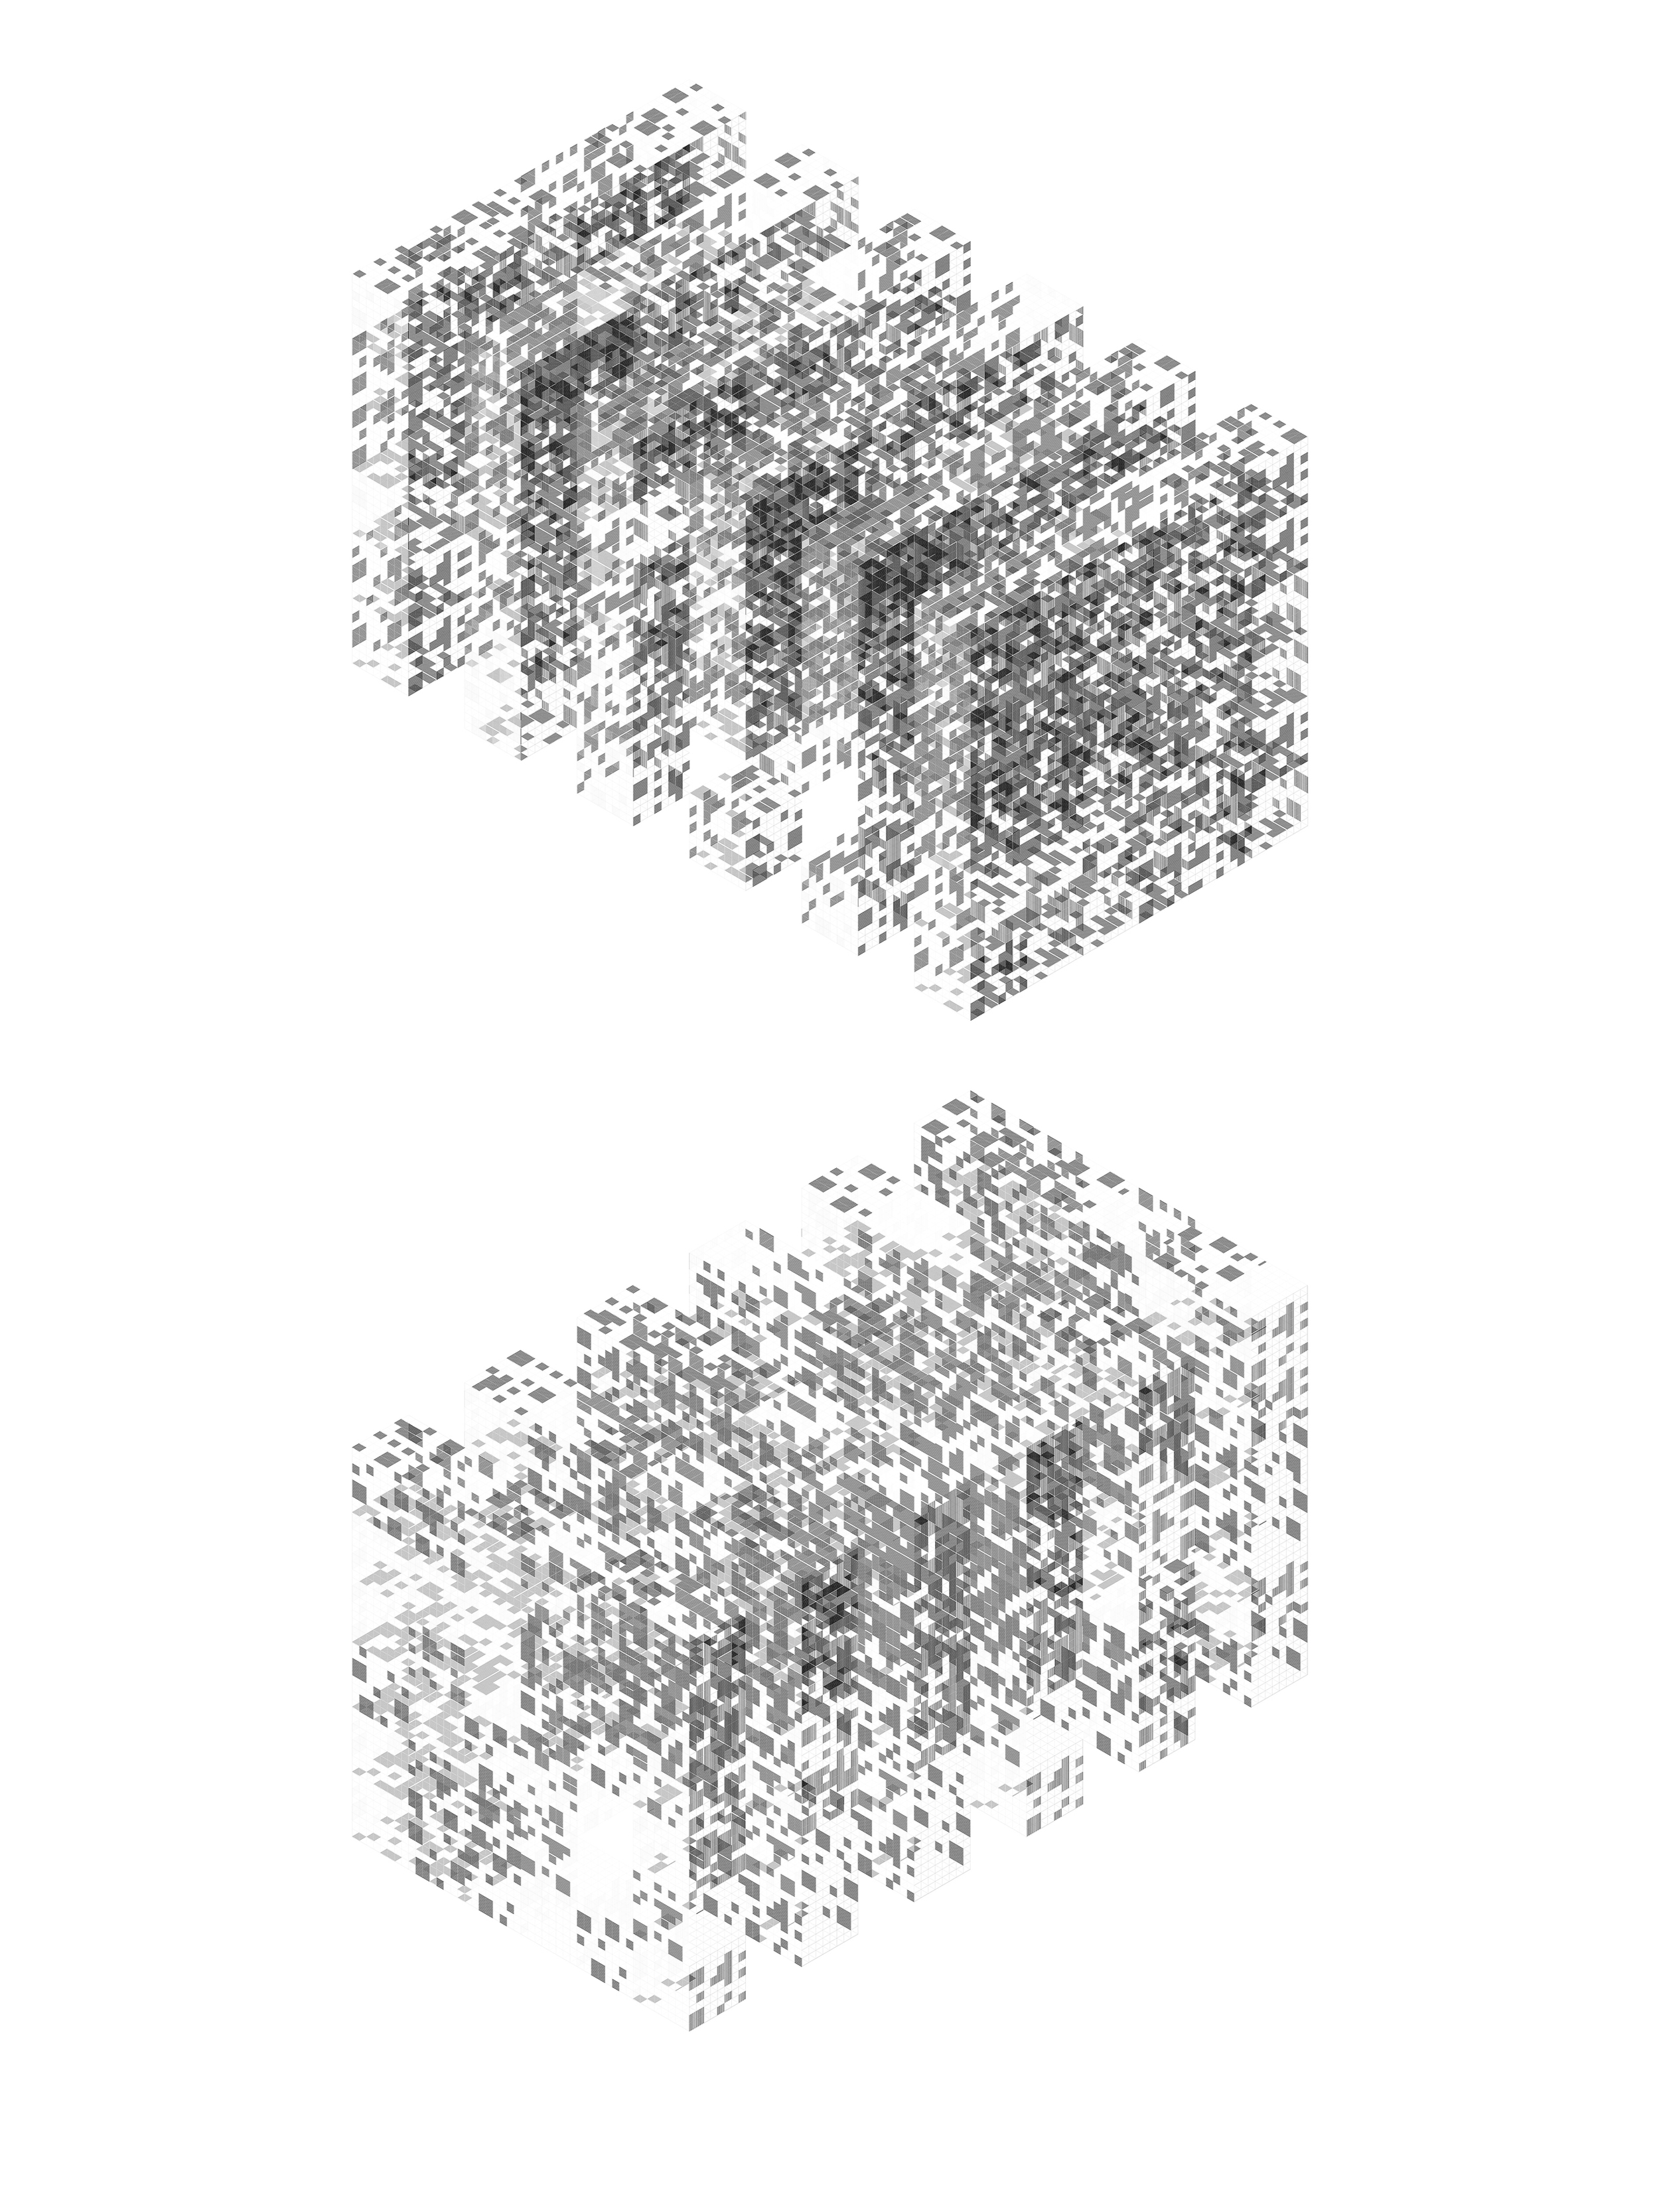 Contour_Compile_Test_SMALL.jpg